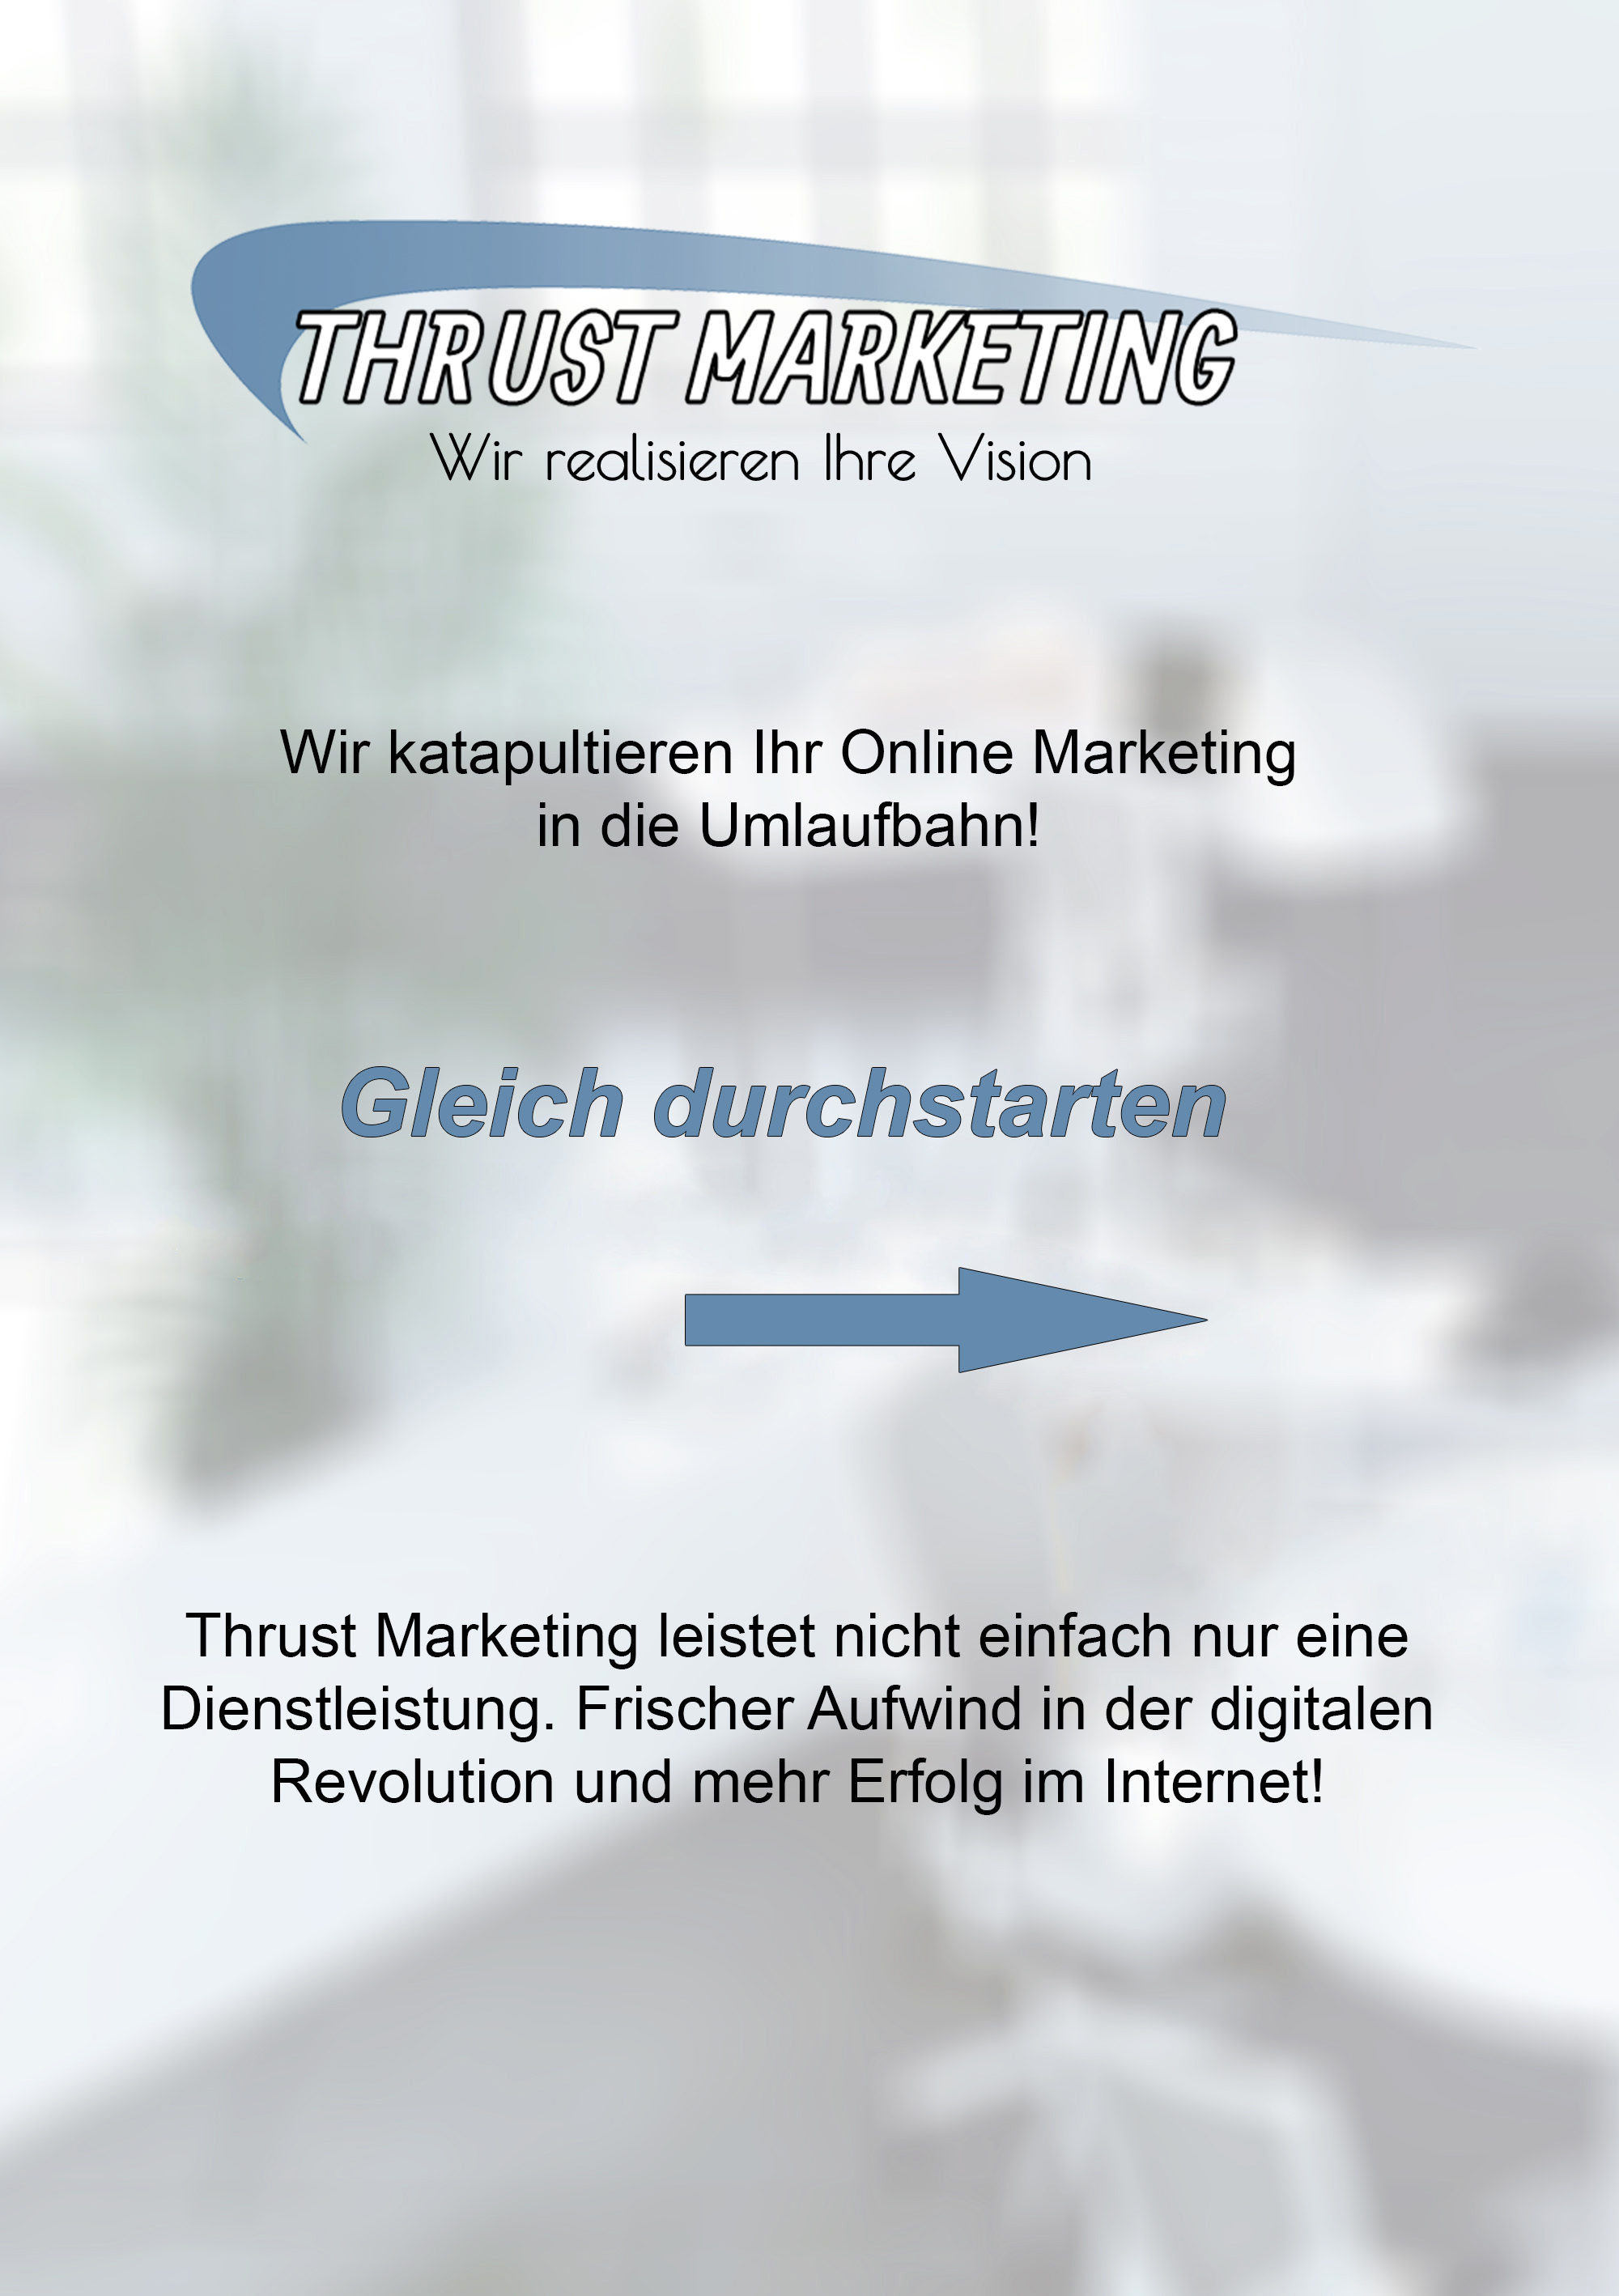 Thrust Marketing Werbeagentur